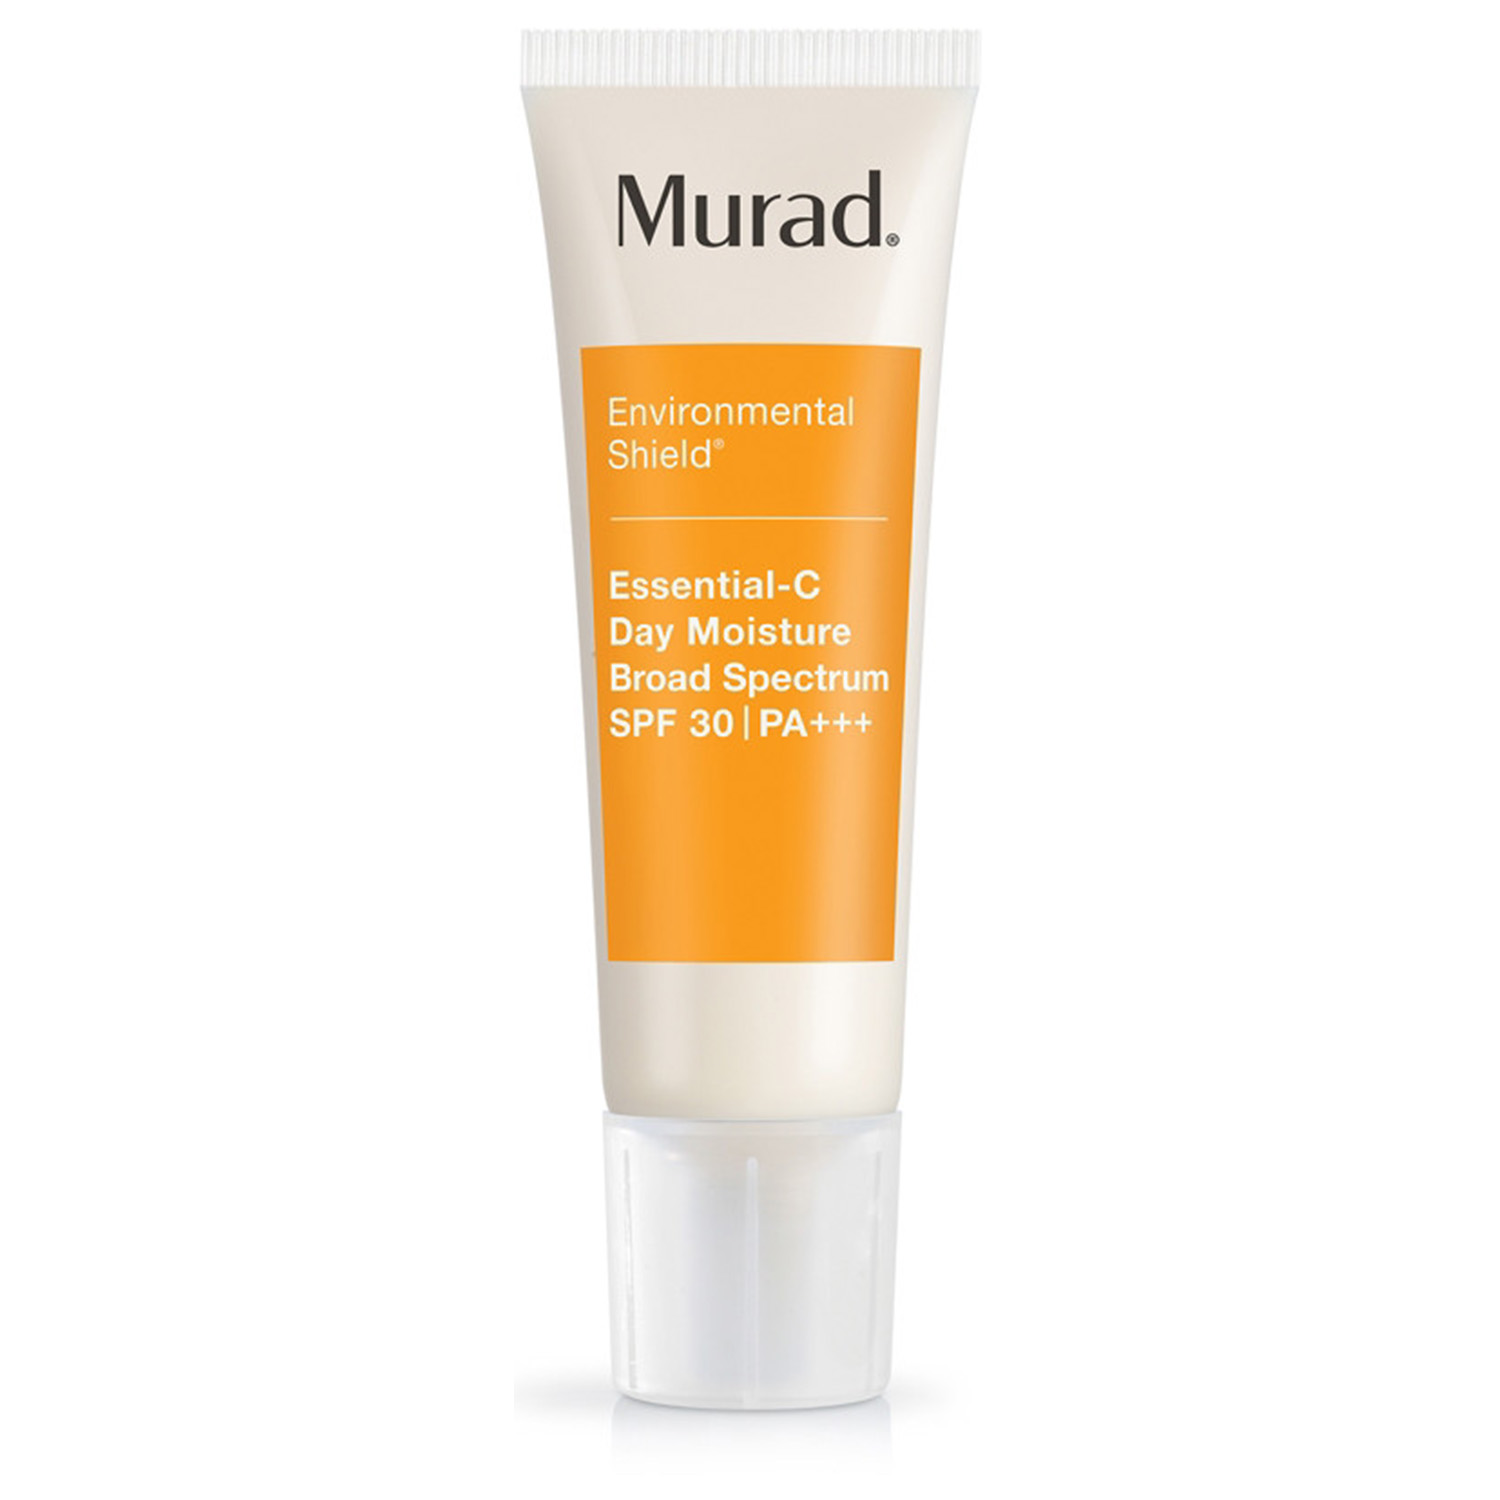 Murad Essential-C Day Moisture Broad Spectrum SPF 30 | PA +++ (ENVIRONMENTAL SHIELD) (1.7 fl oz / 50 ml)